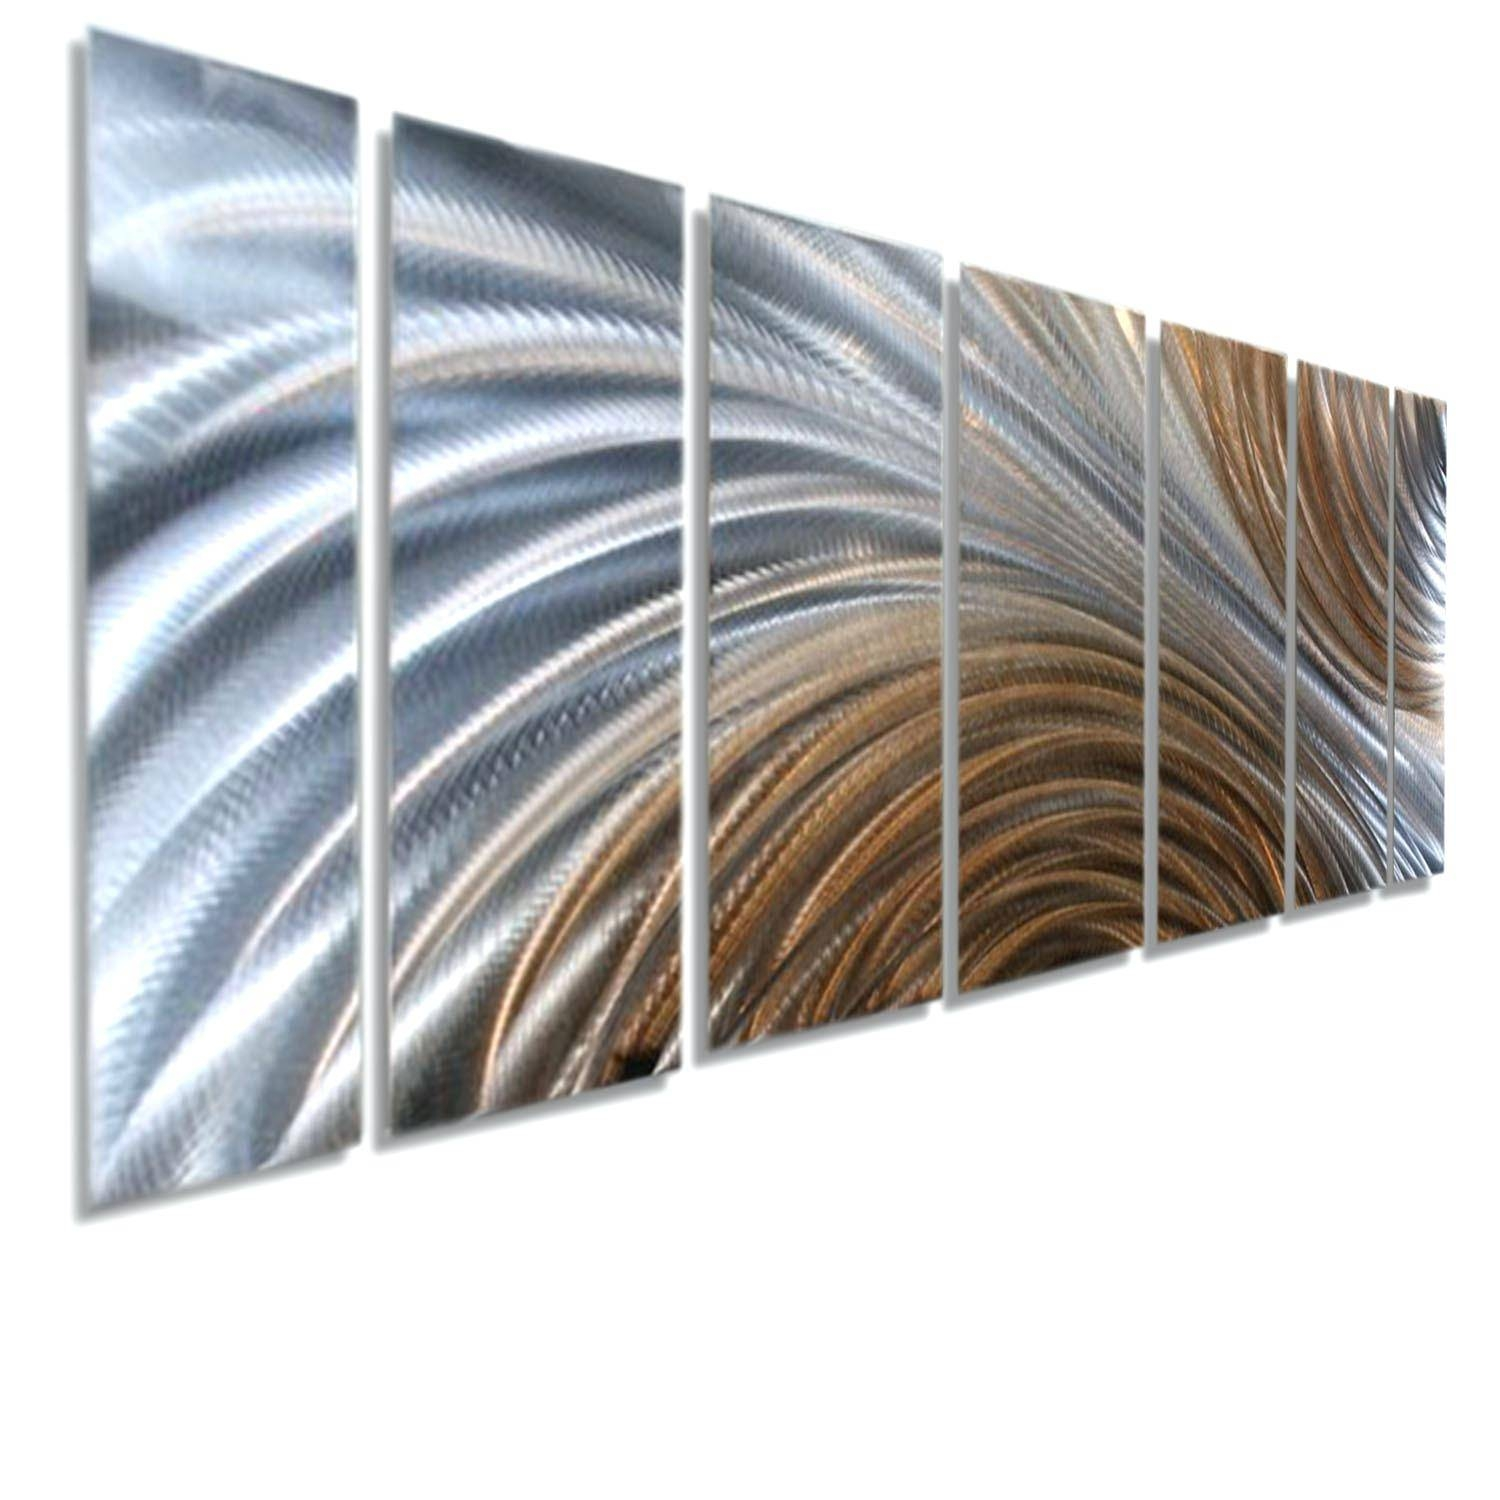 Wall Ideas : Mgctlbxnmzp Mgctlbxv5114 Mgctlbxlc Metal Wall Art Inside Most Up To Date Ash Carl Metal Art (View 12 of 30)